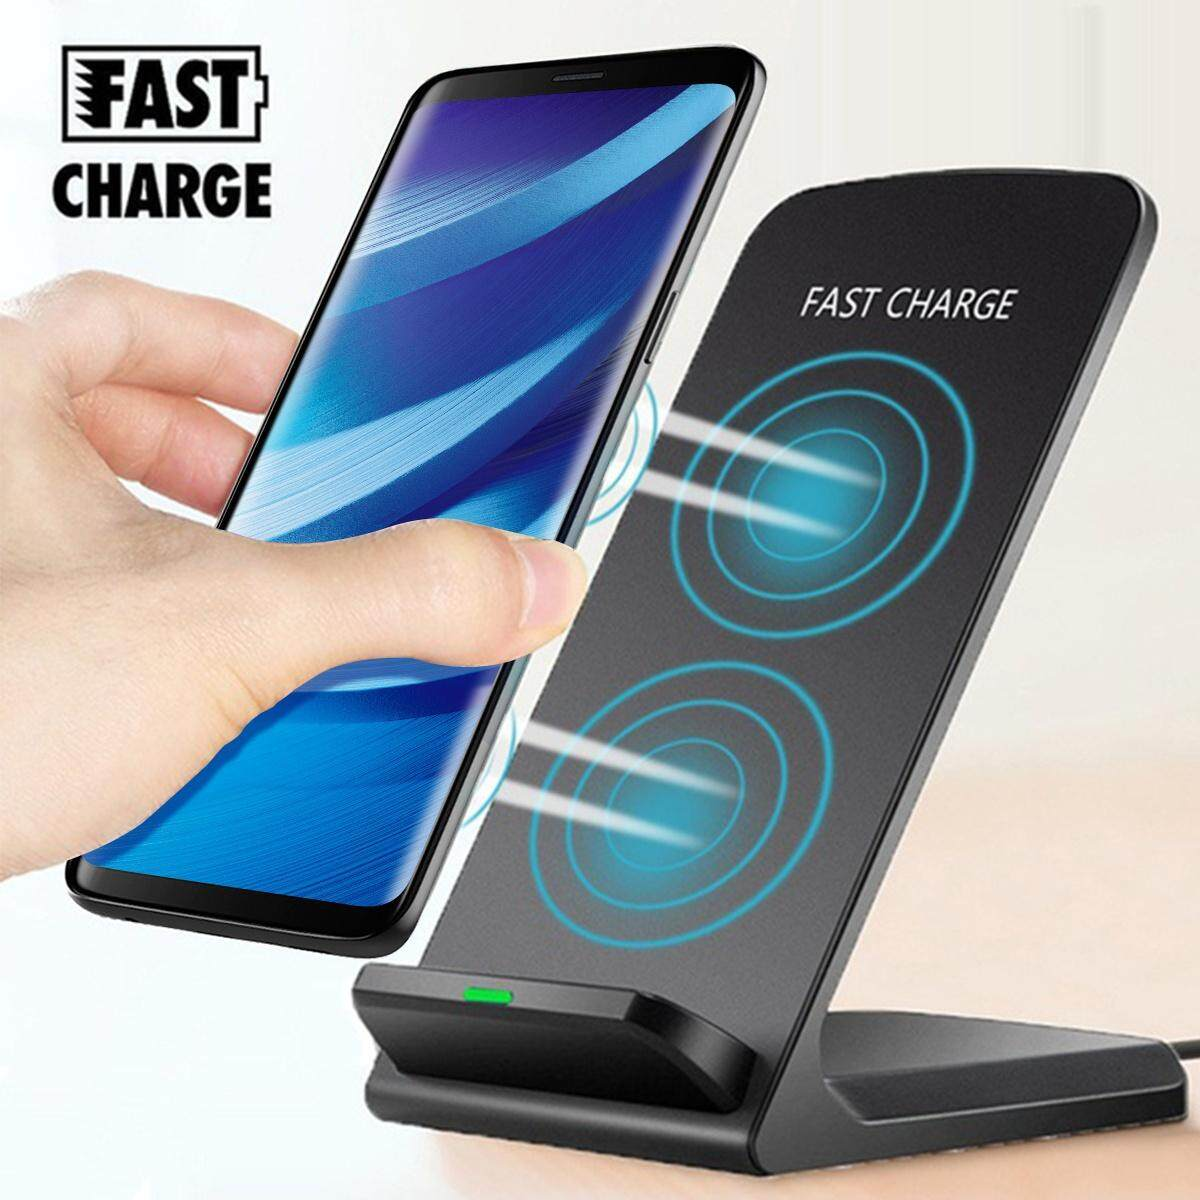 New Qi Fast Wireless Charger Quick Charge For Samsung Galaxy S9 / S9 Plus / Note 8 / S8 / S8 Plus / S7 / S7 Edge / Note 5 / S6 / S6 Edge / S6 Edge Plus / iPhone X / 8 / 8 Plus Black - intl